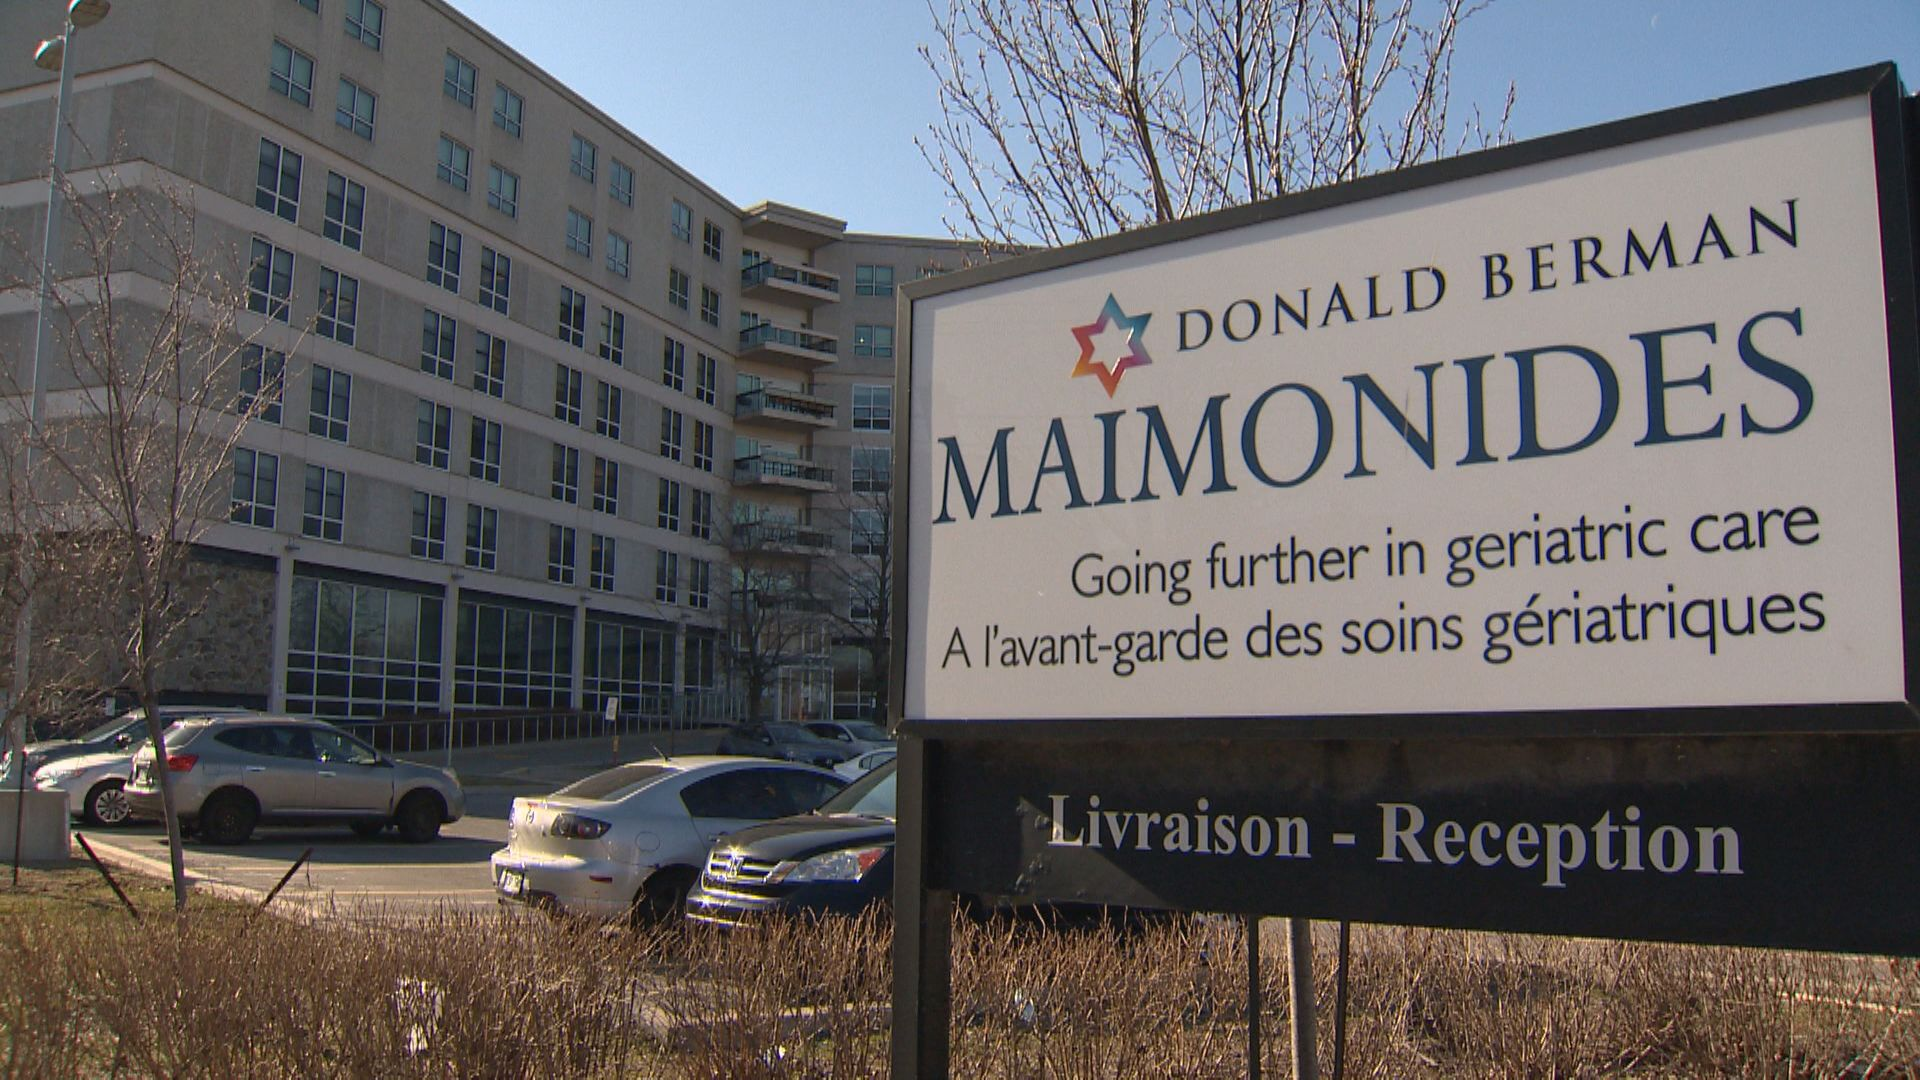 Montreal News Today - COVID-19 outbreak at Maimonides prompts concerns over staffing, safety | NewsBurrow thumbnail